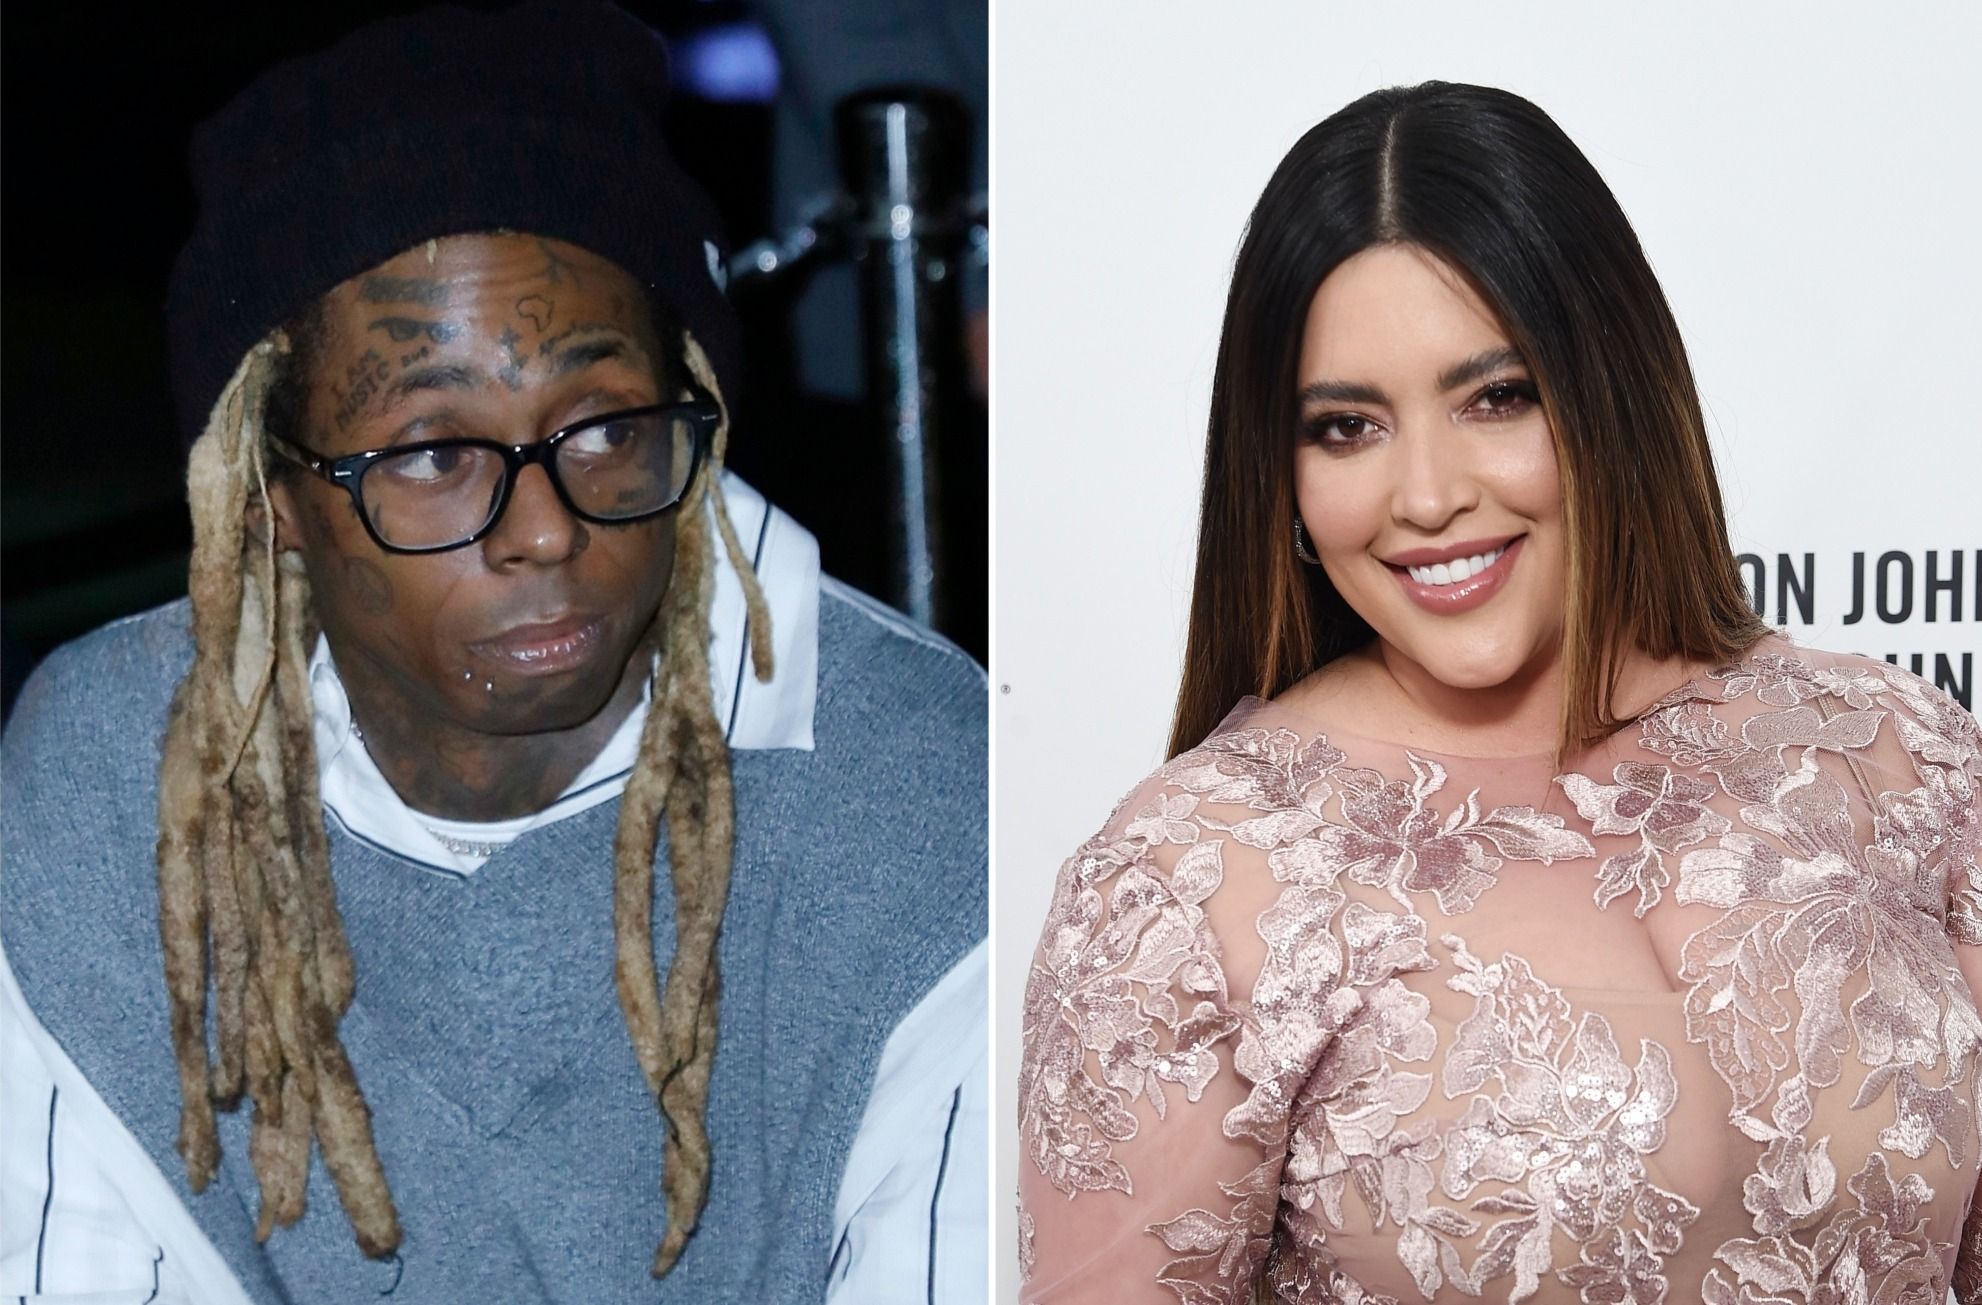 Lil Wayne And Denise Bidot Unfollow One Another On Social Media Sparking Breakup Speculations!